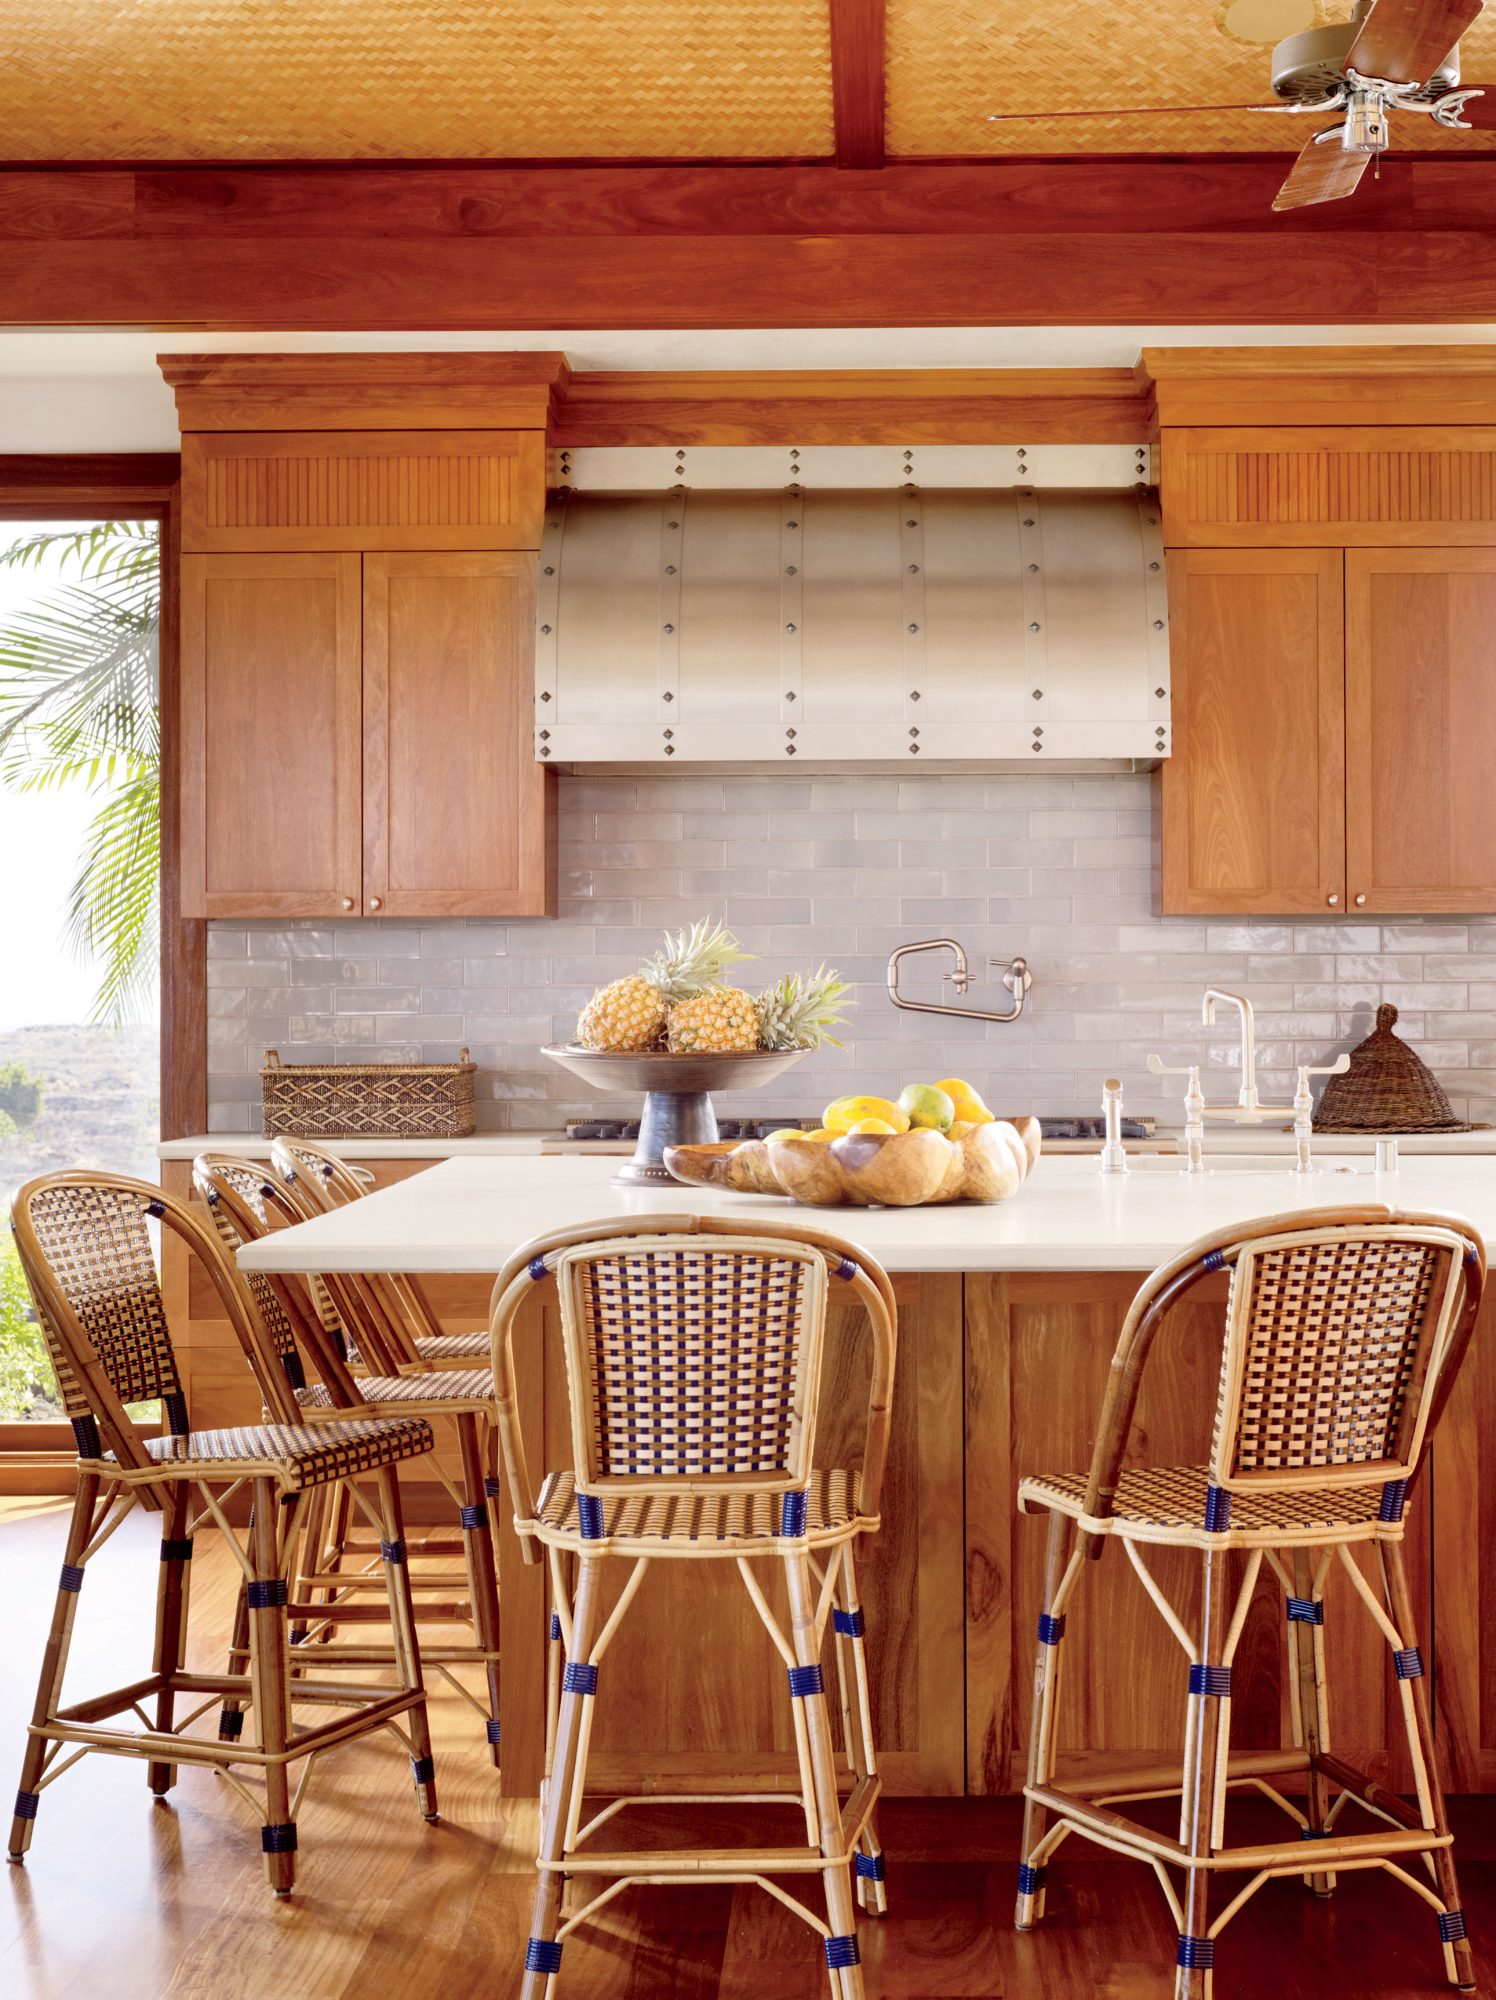 This Kona, Hawaii, kitchen features honey-hued cabinets and woven barstools for a natural palette that allows the glimmering blue-gray tile backsplash to really shine.